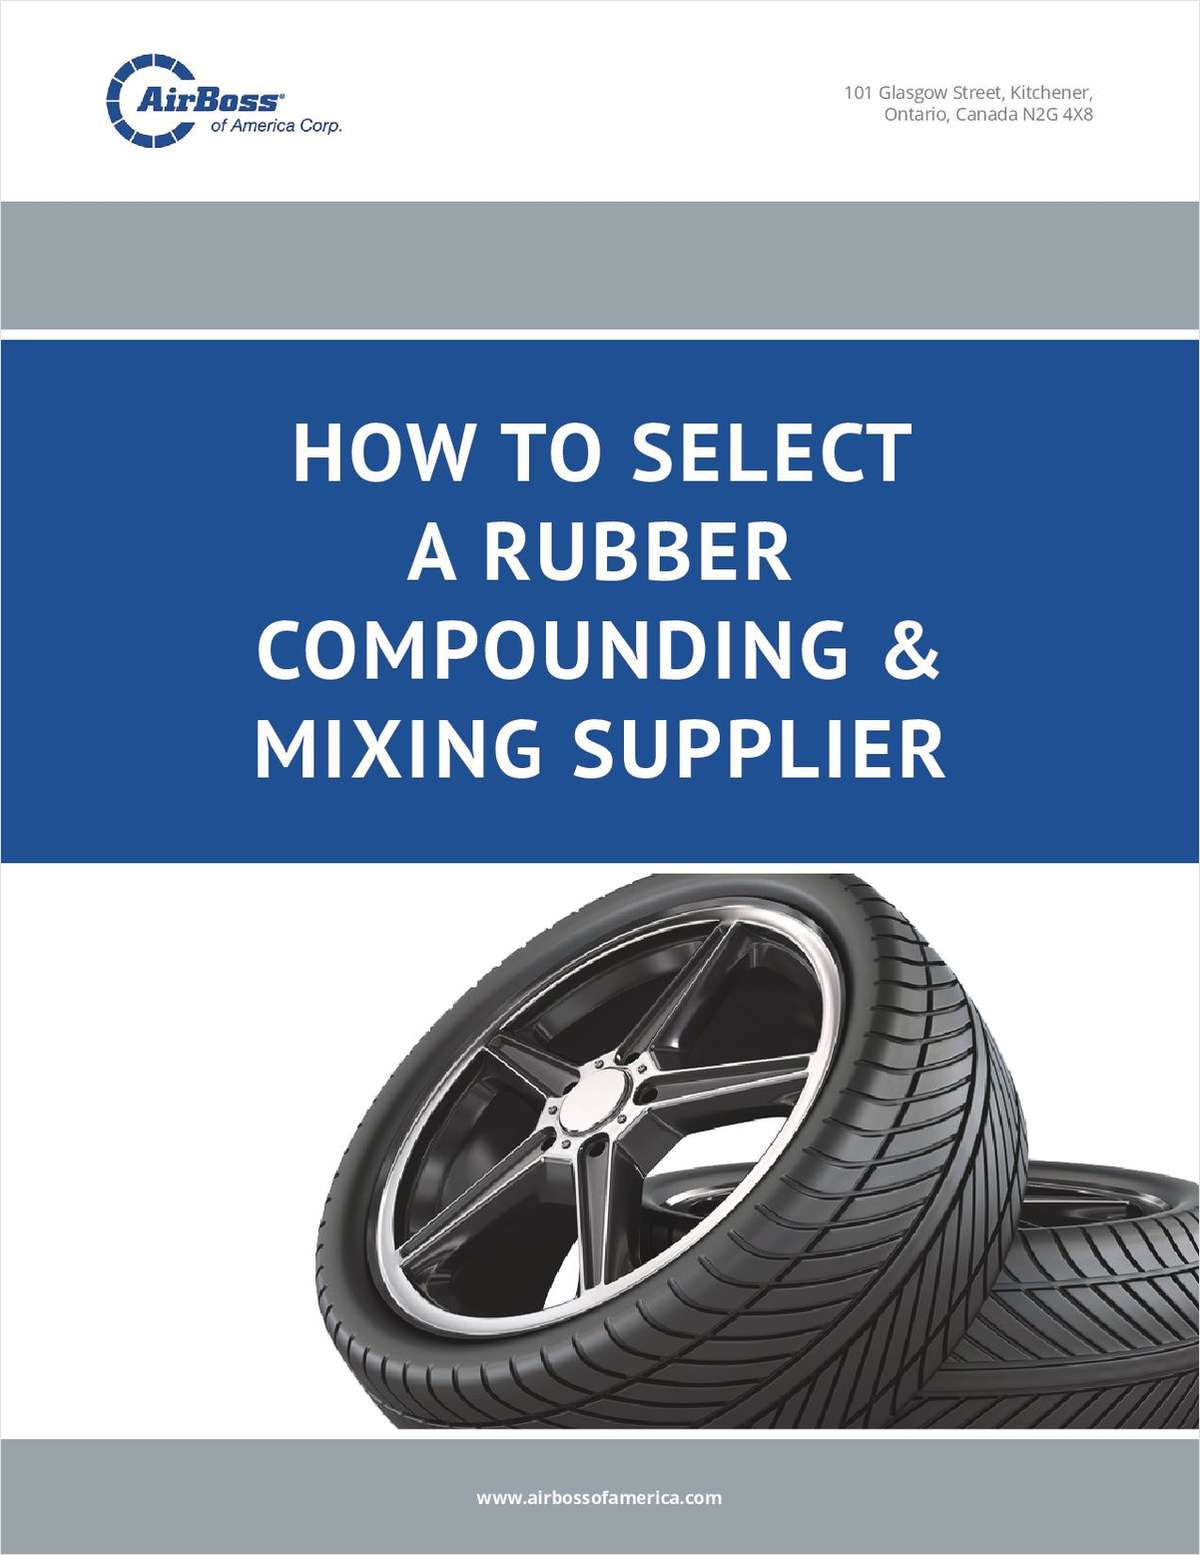 How to Select a Rubber Compounding & Mixing Supplier